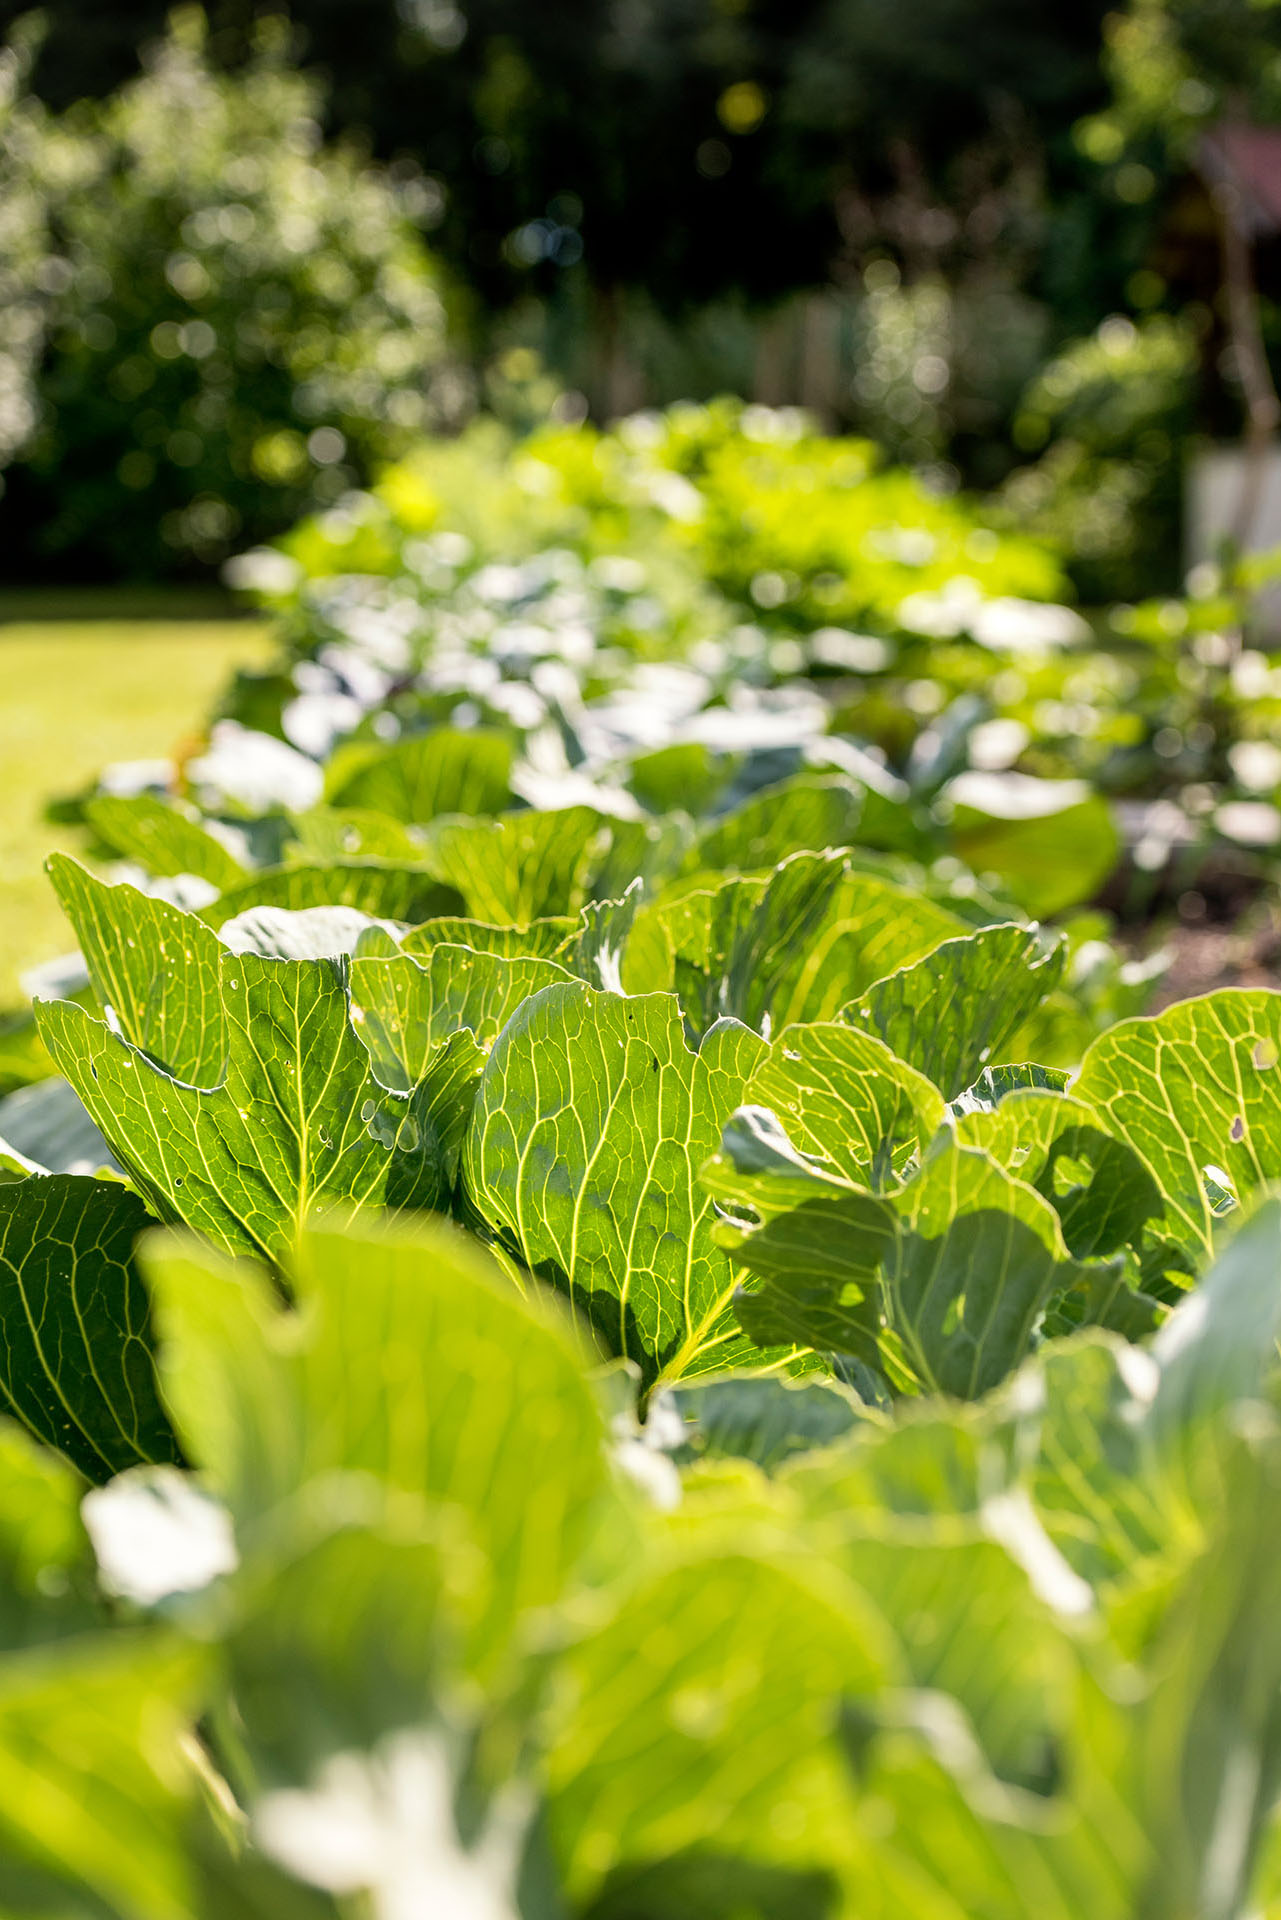 Organic vegetable gardens -  The Organic Vegetable Garden Is Furthermore Home To Nut Trees As Well As Numerous Vegetable Patches Growing Ancient Types Of Tomatoes Kohlrabi